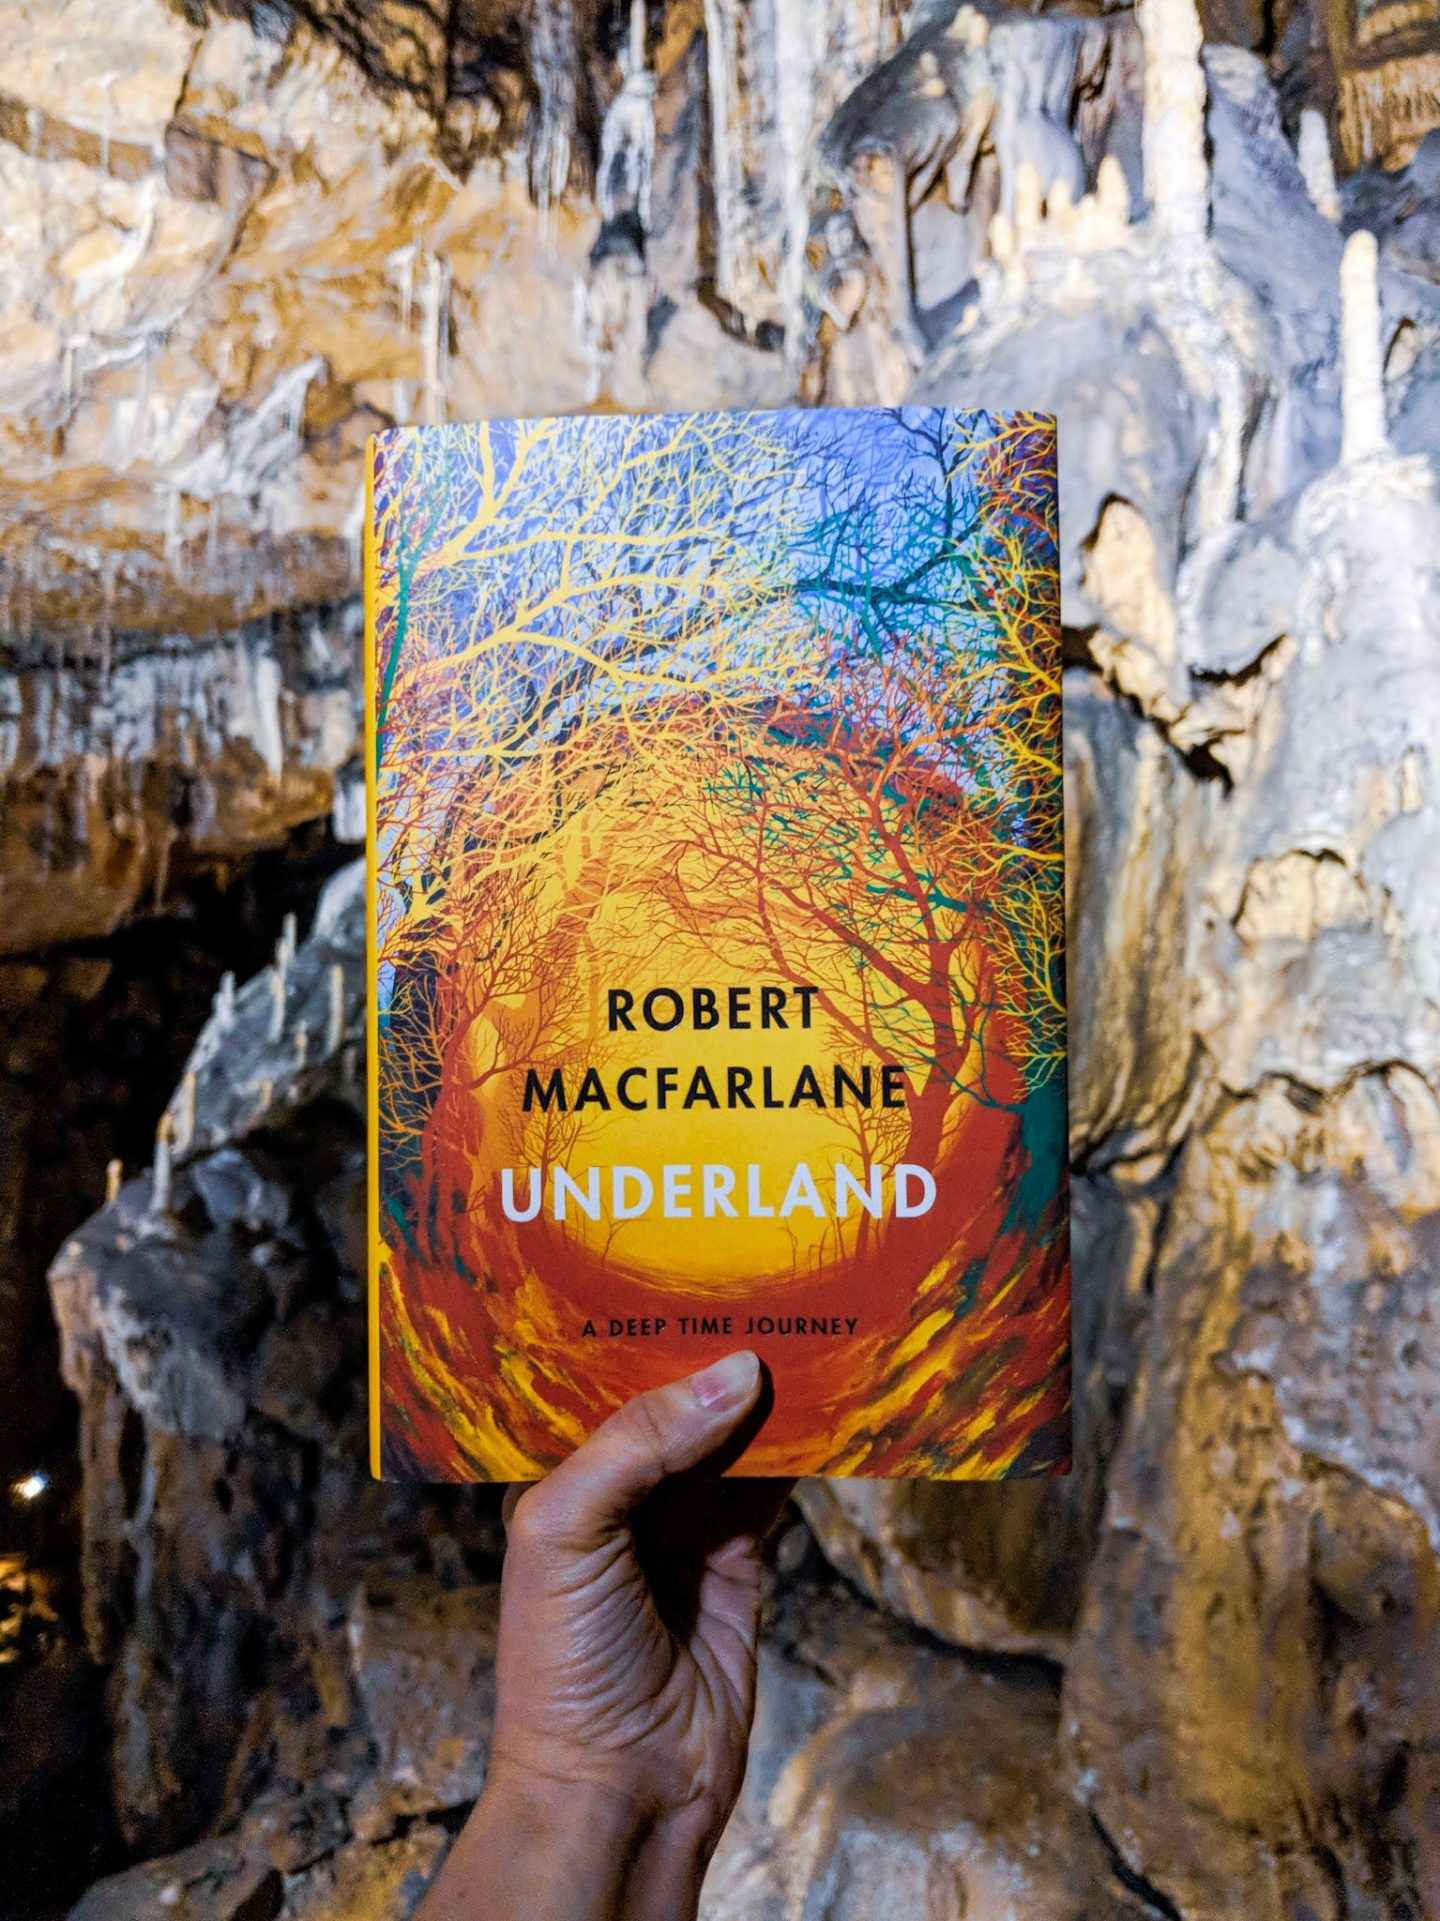 A hand holding Underland by Robert Macfarlane in a cave